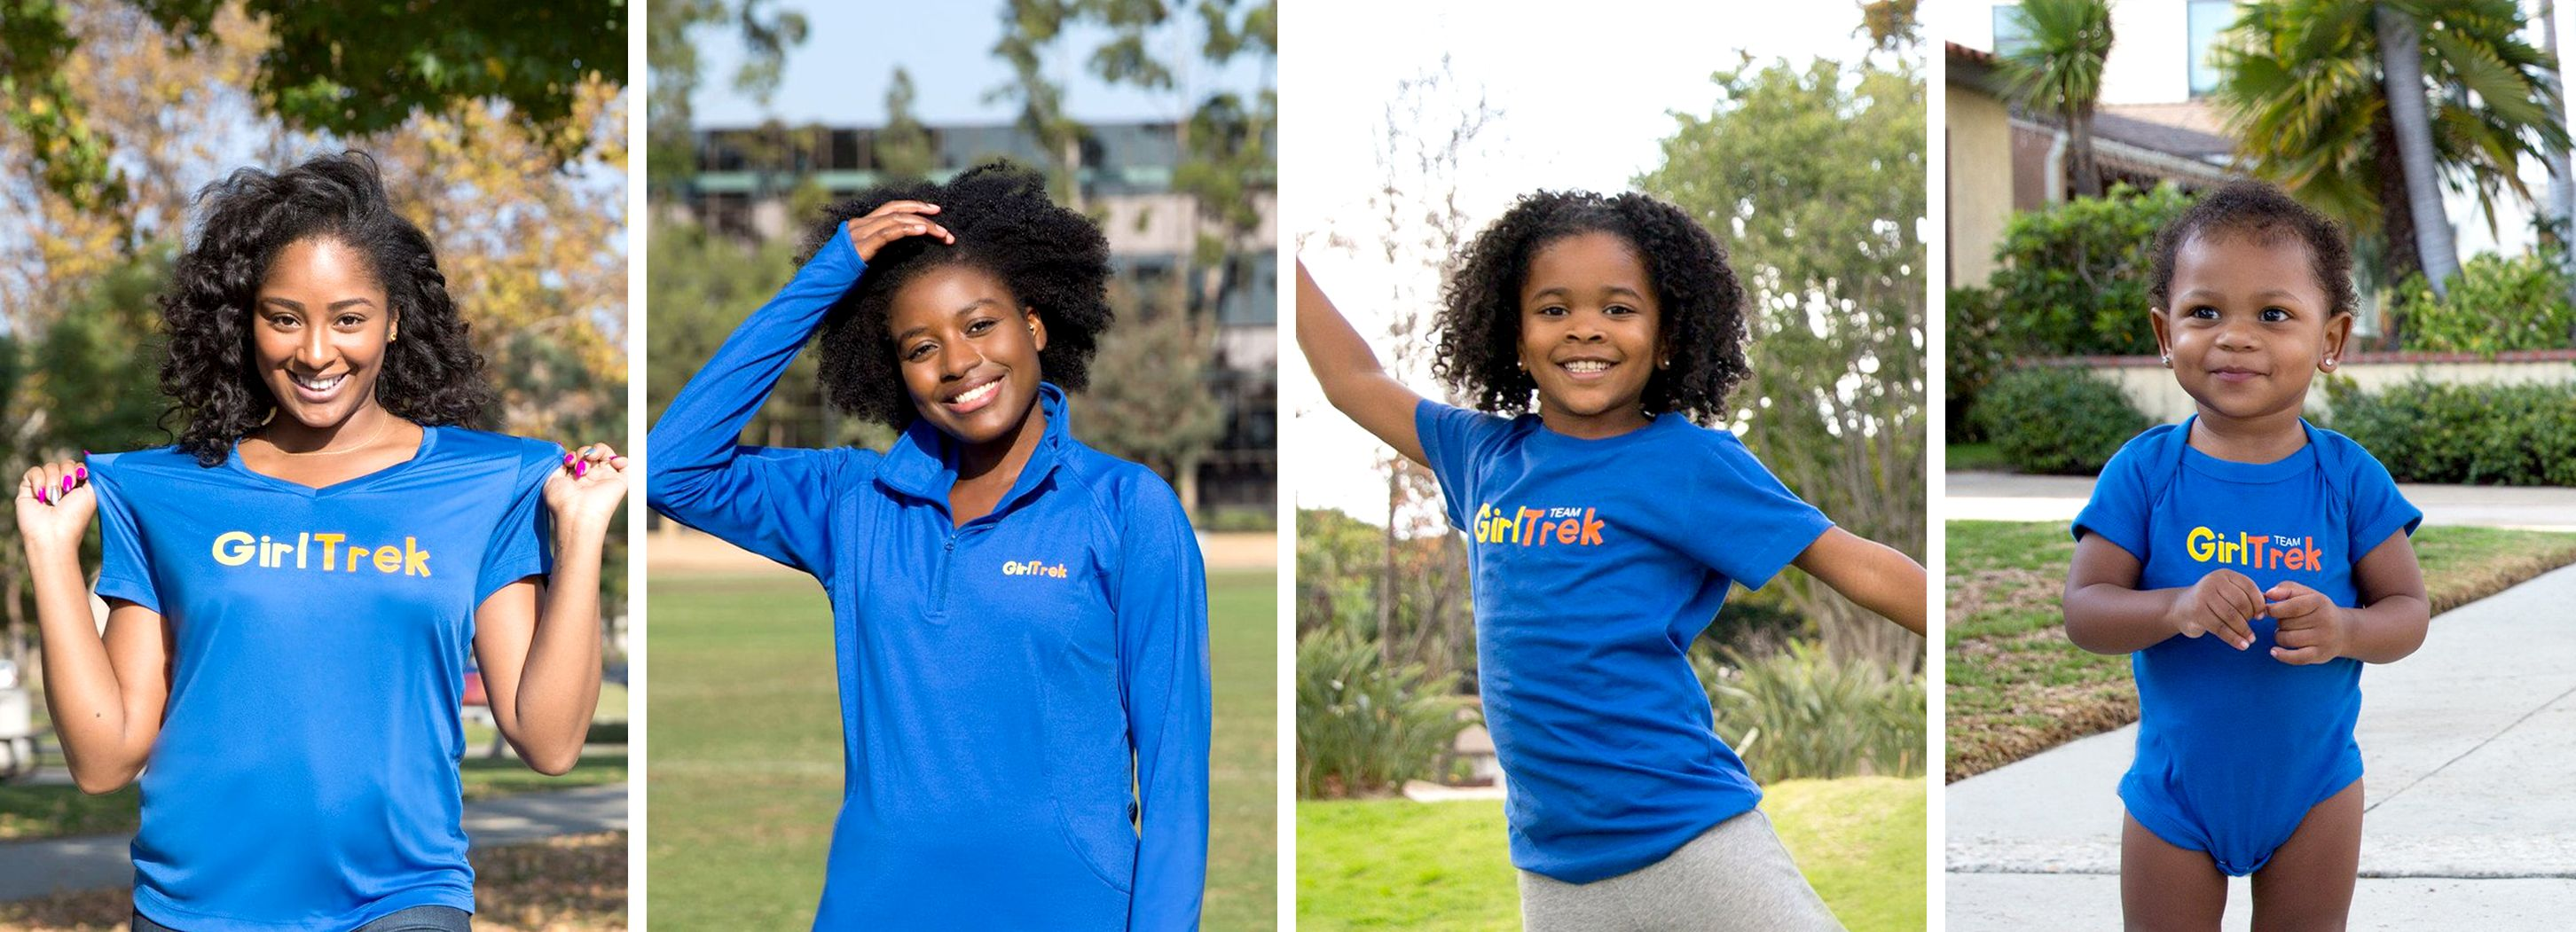 Girltrek-2-2-compressor